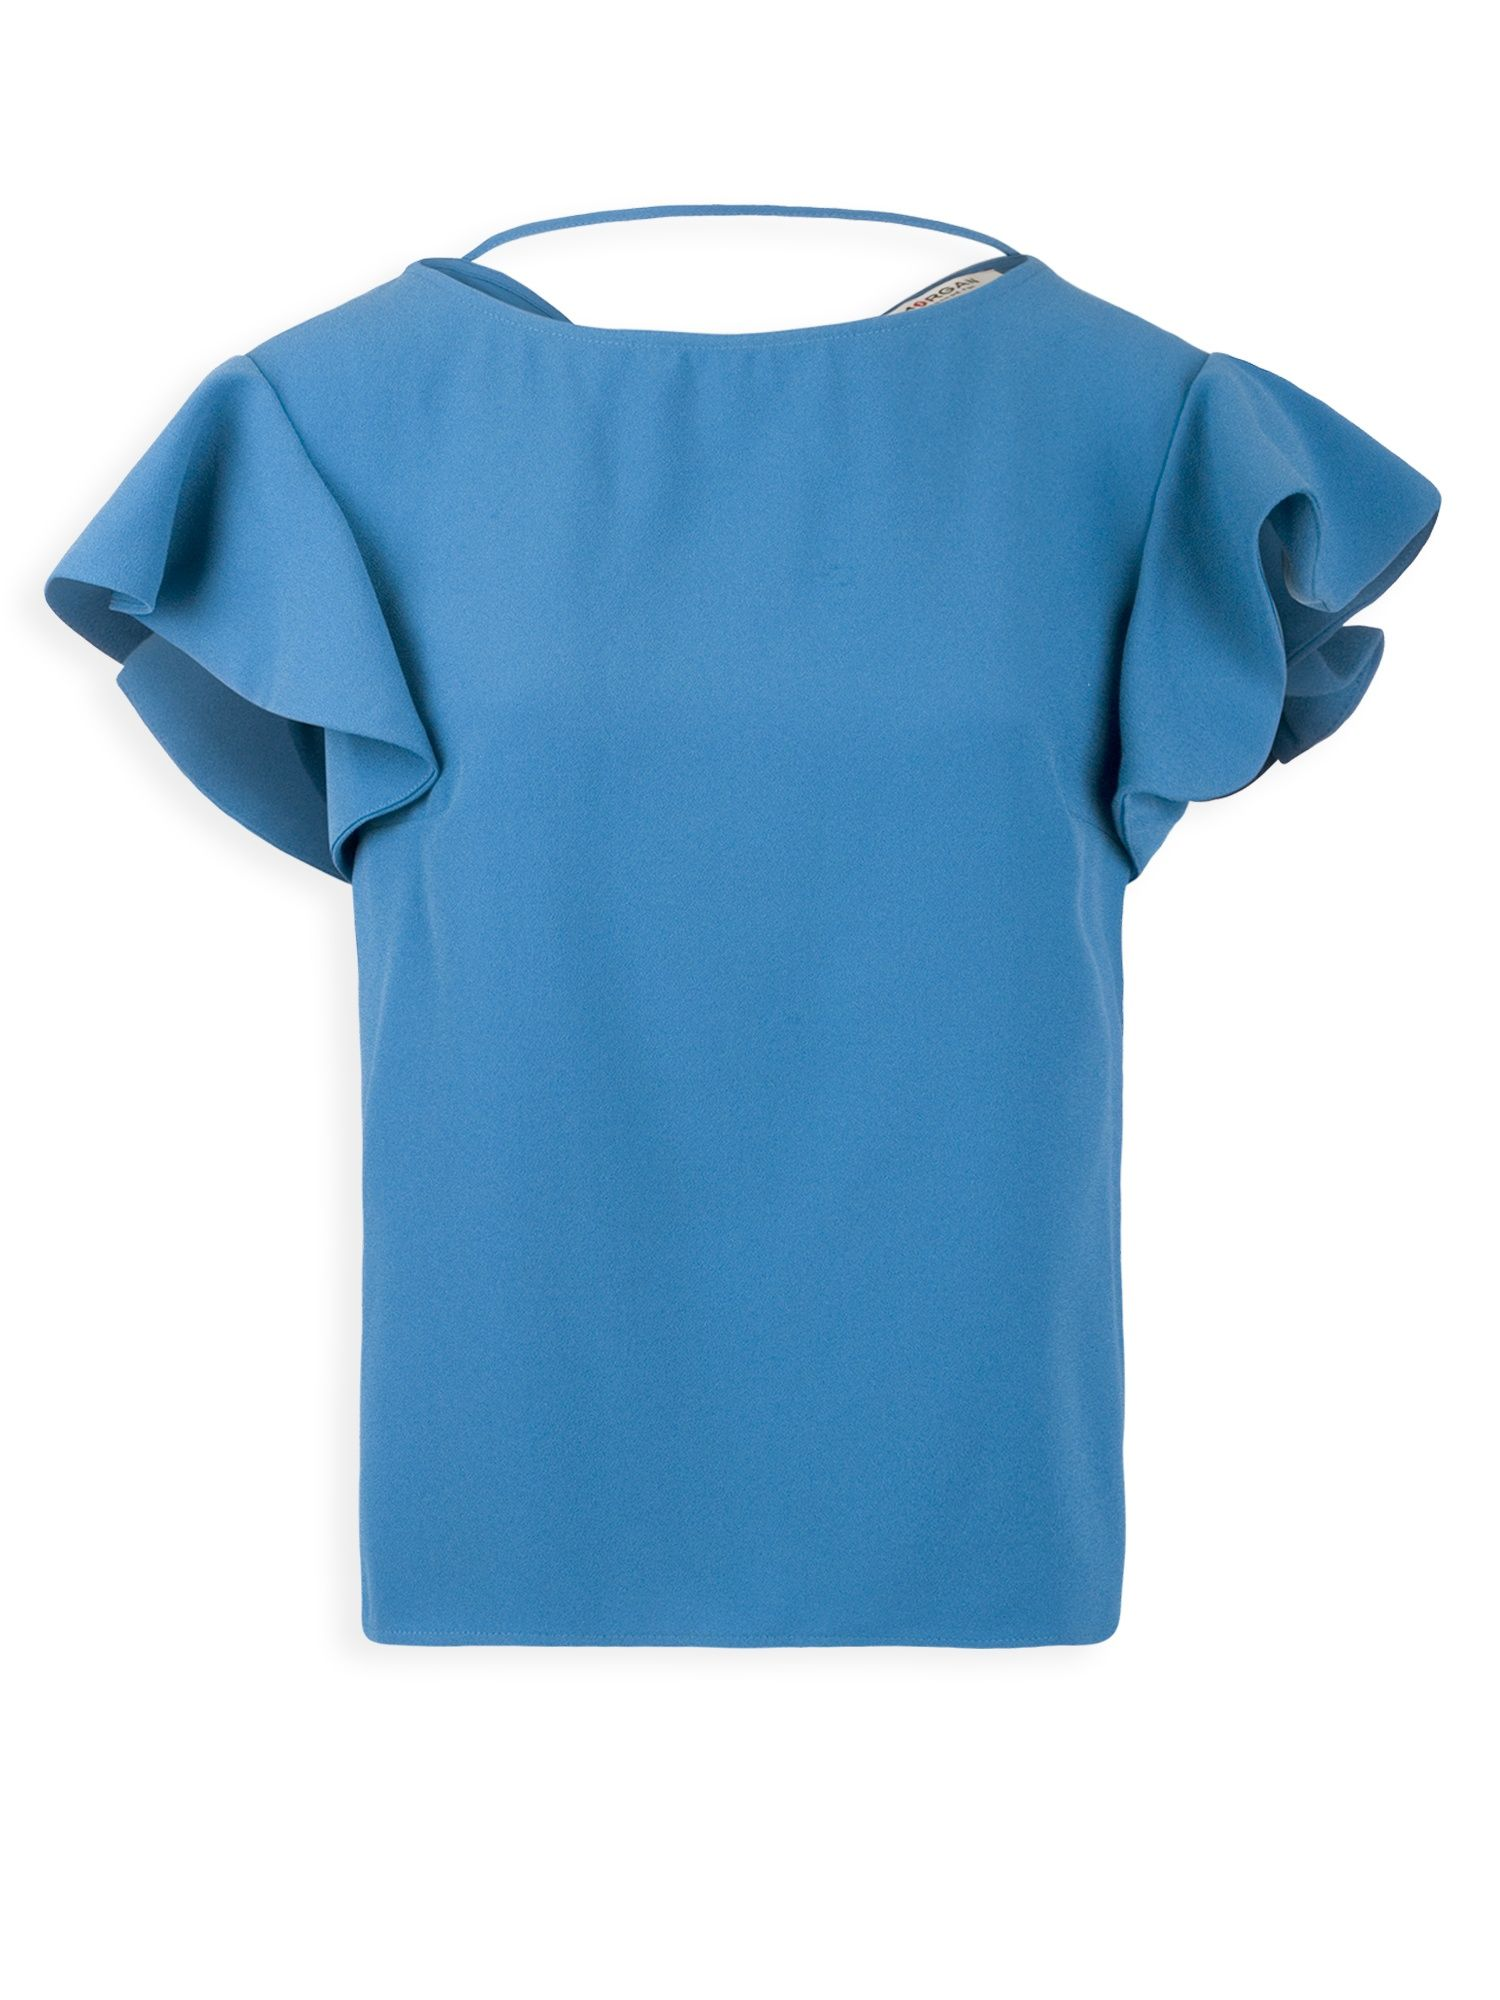 Morgan Crepe Top With Ruffled Sleeves, Indigo